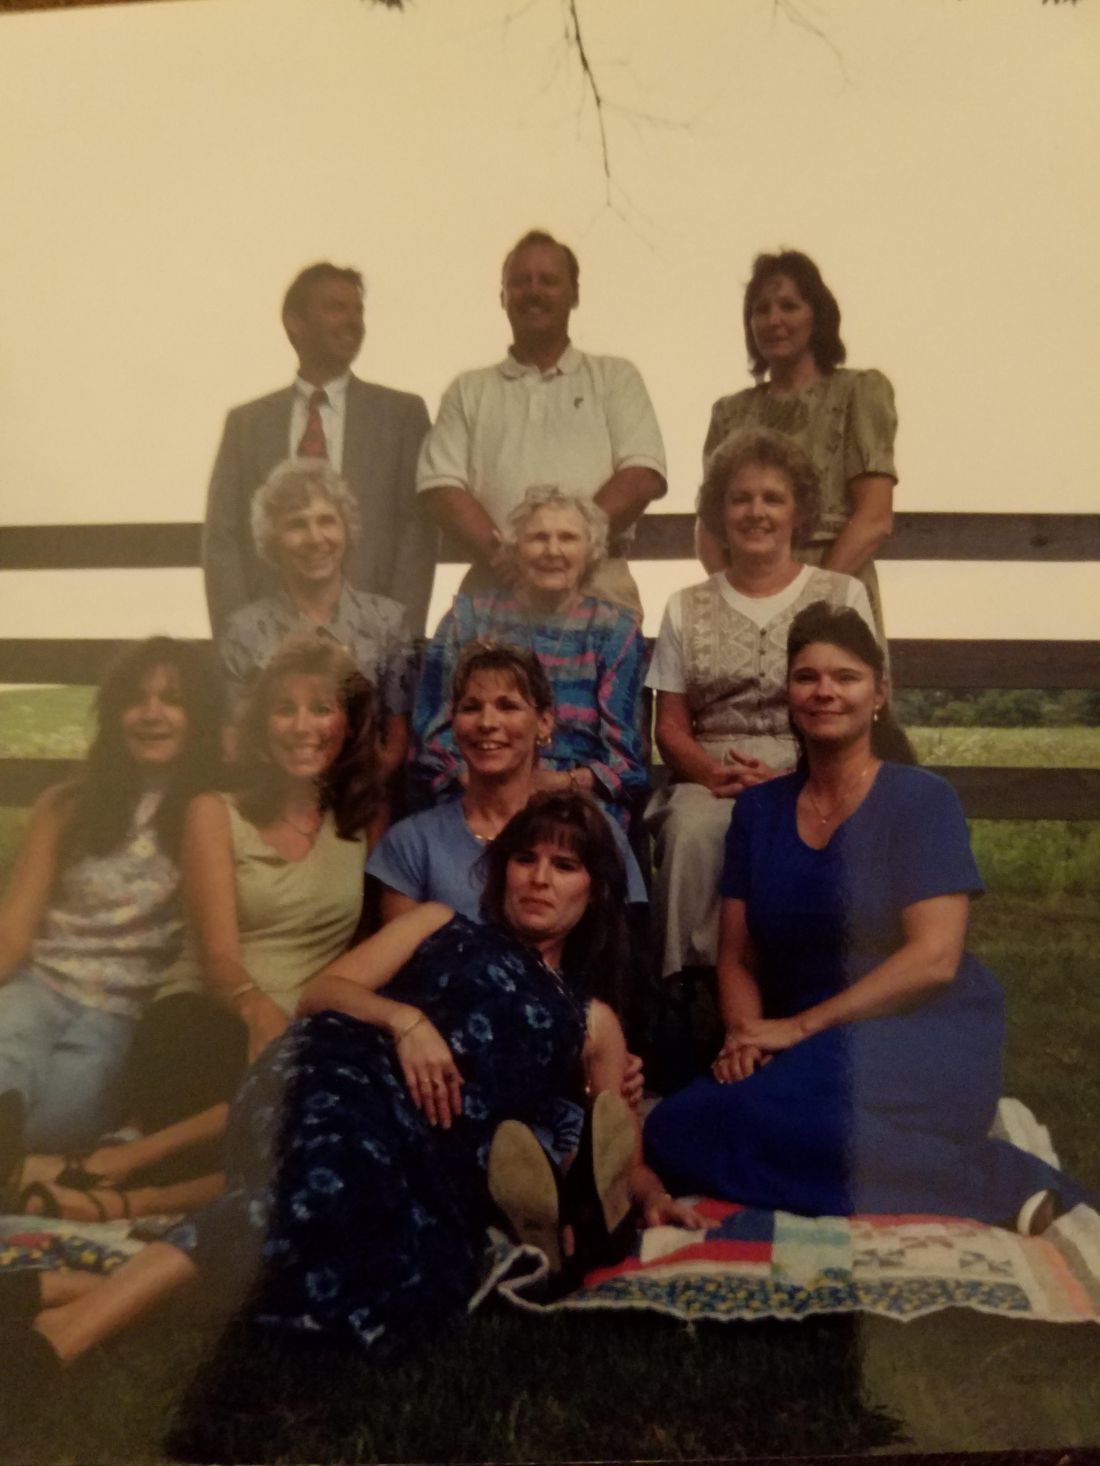 Top row: Be Be, Geary, Donna 2nd row: Kak, Granny, Hilda 3rd row: Lisa, Carolyn, Kathy, Peggy Front: Norma